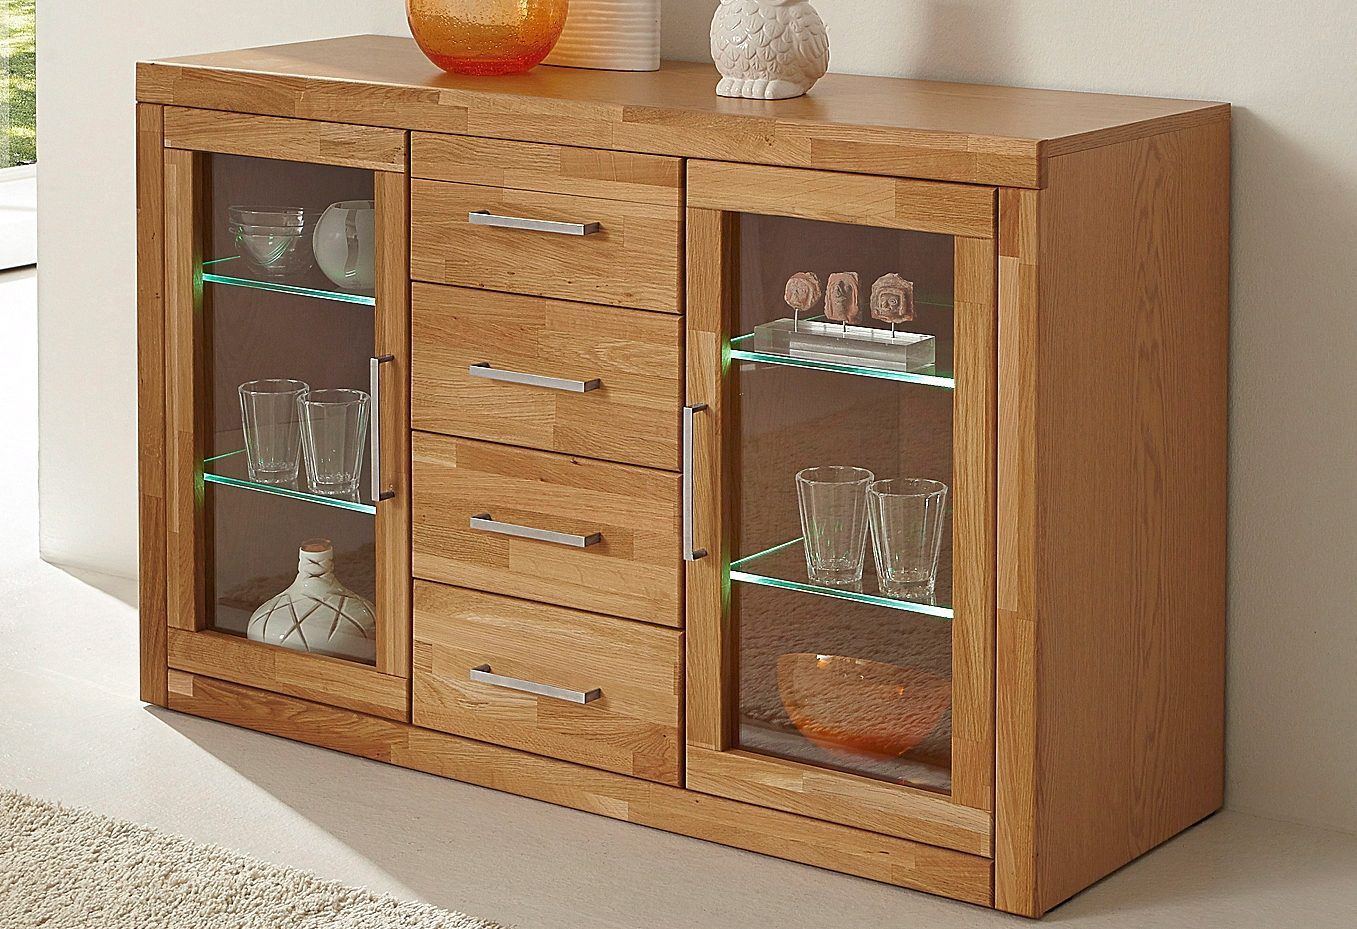 Places of Style Sideboard Breite 130 cm